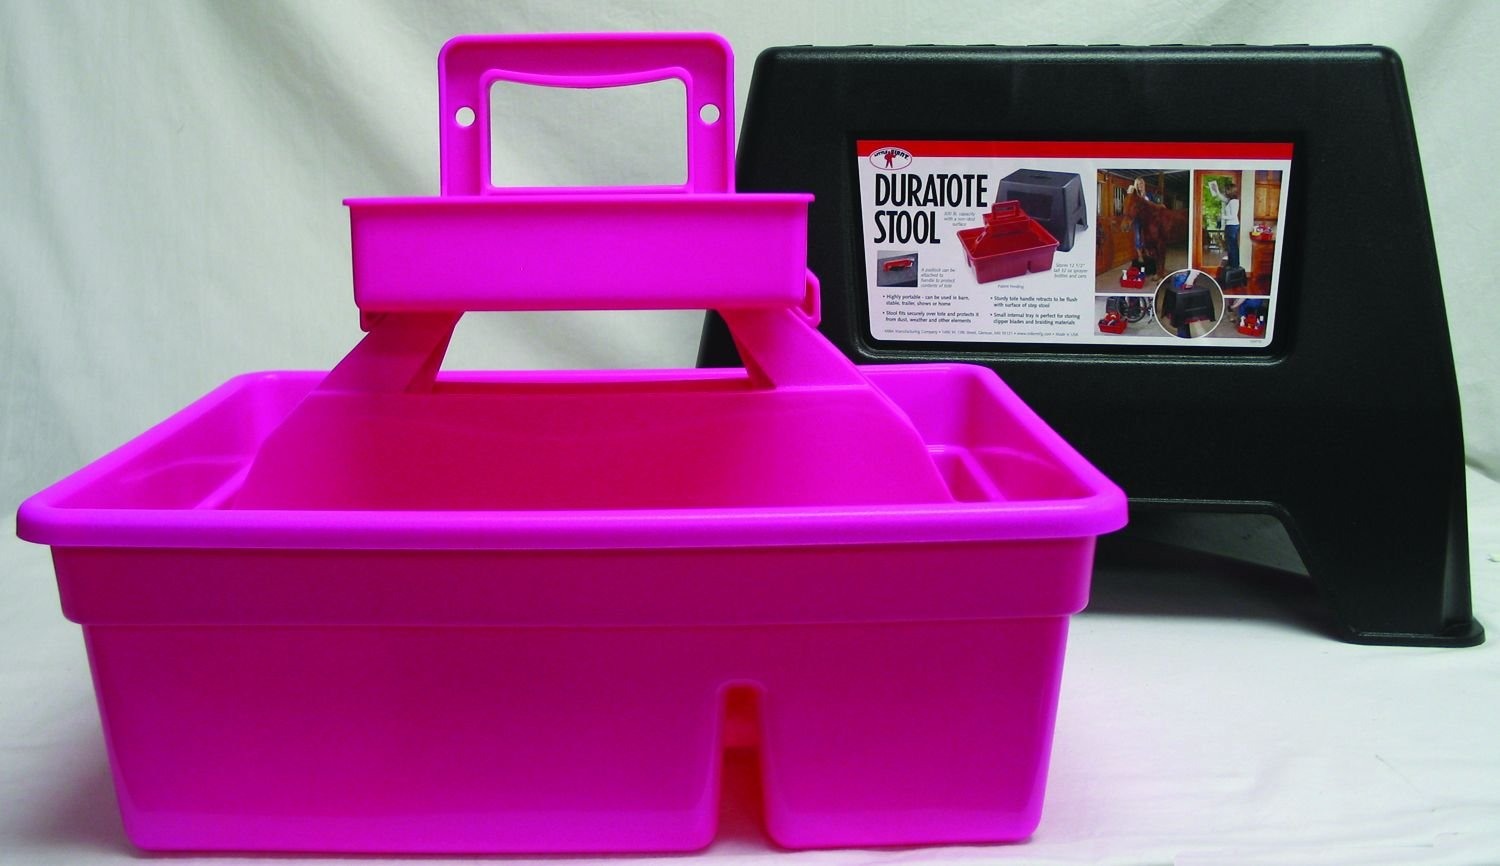 Duratote Step Stool Hot Pink Miller Mfg Co BC957479